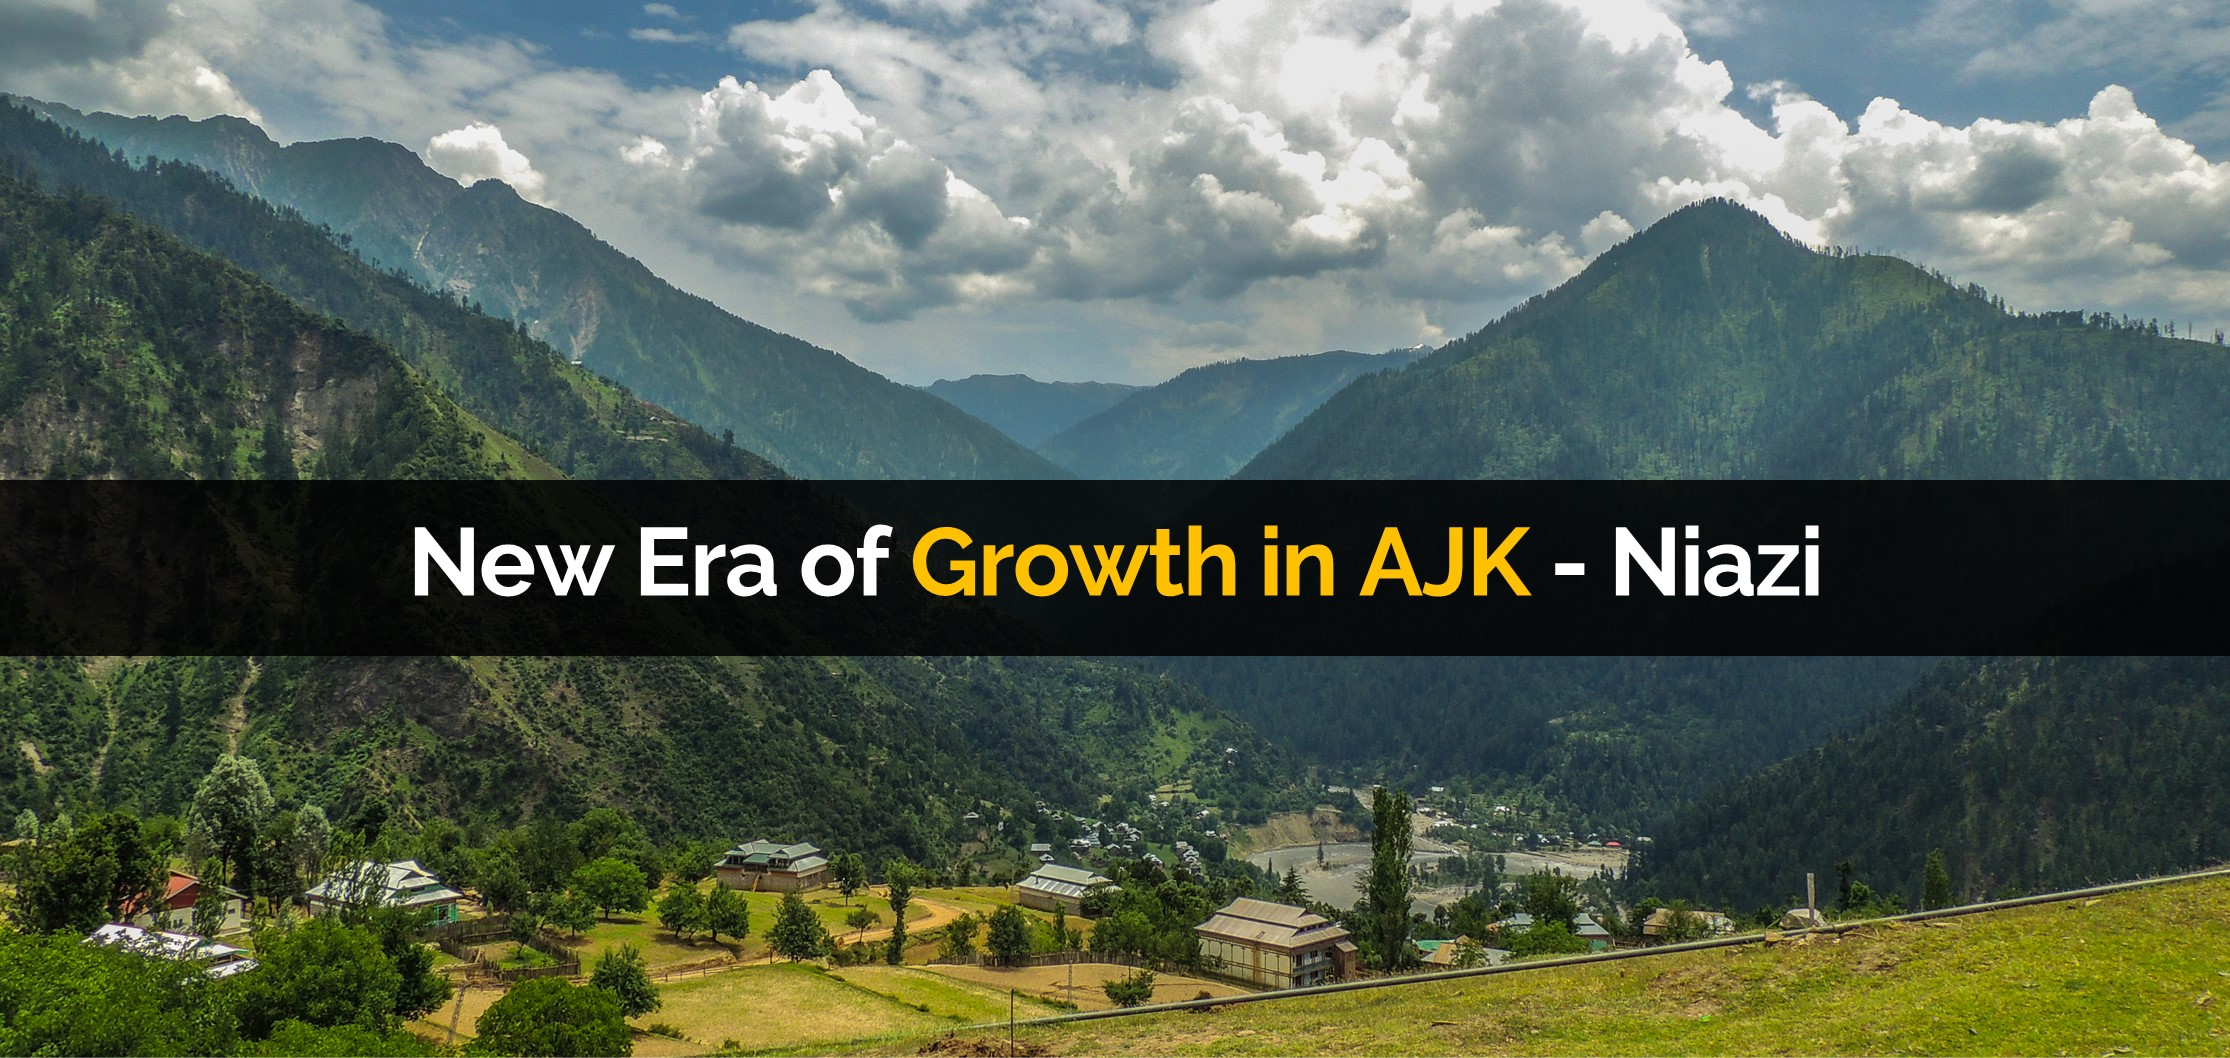 New Era of Growth in AJK - Prime Minister of AJK